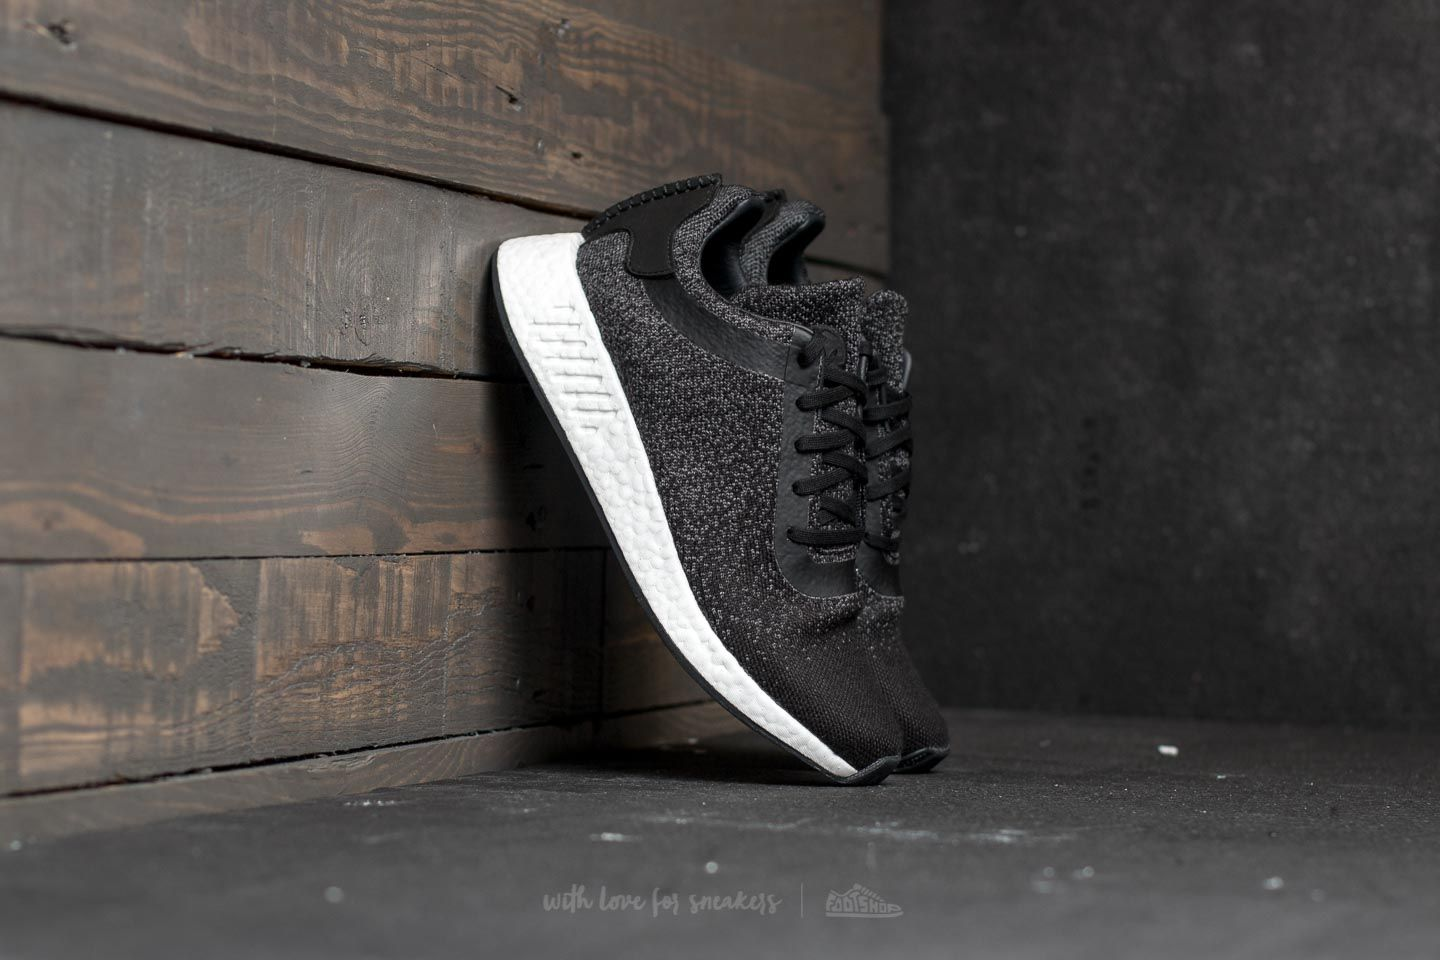 WingsHorns Five Nmd Utility Adidas Black Core R2 Grey pSVUqGzM